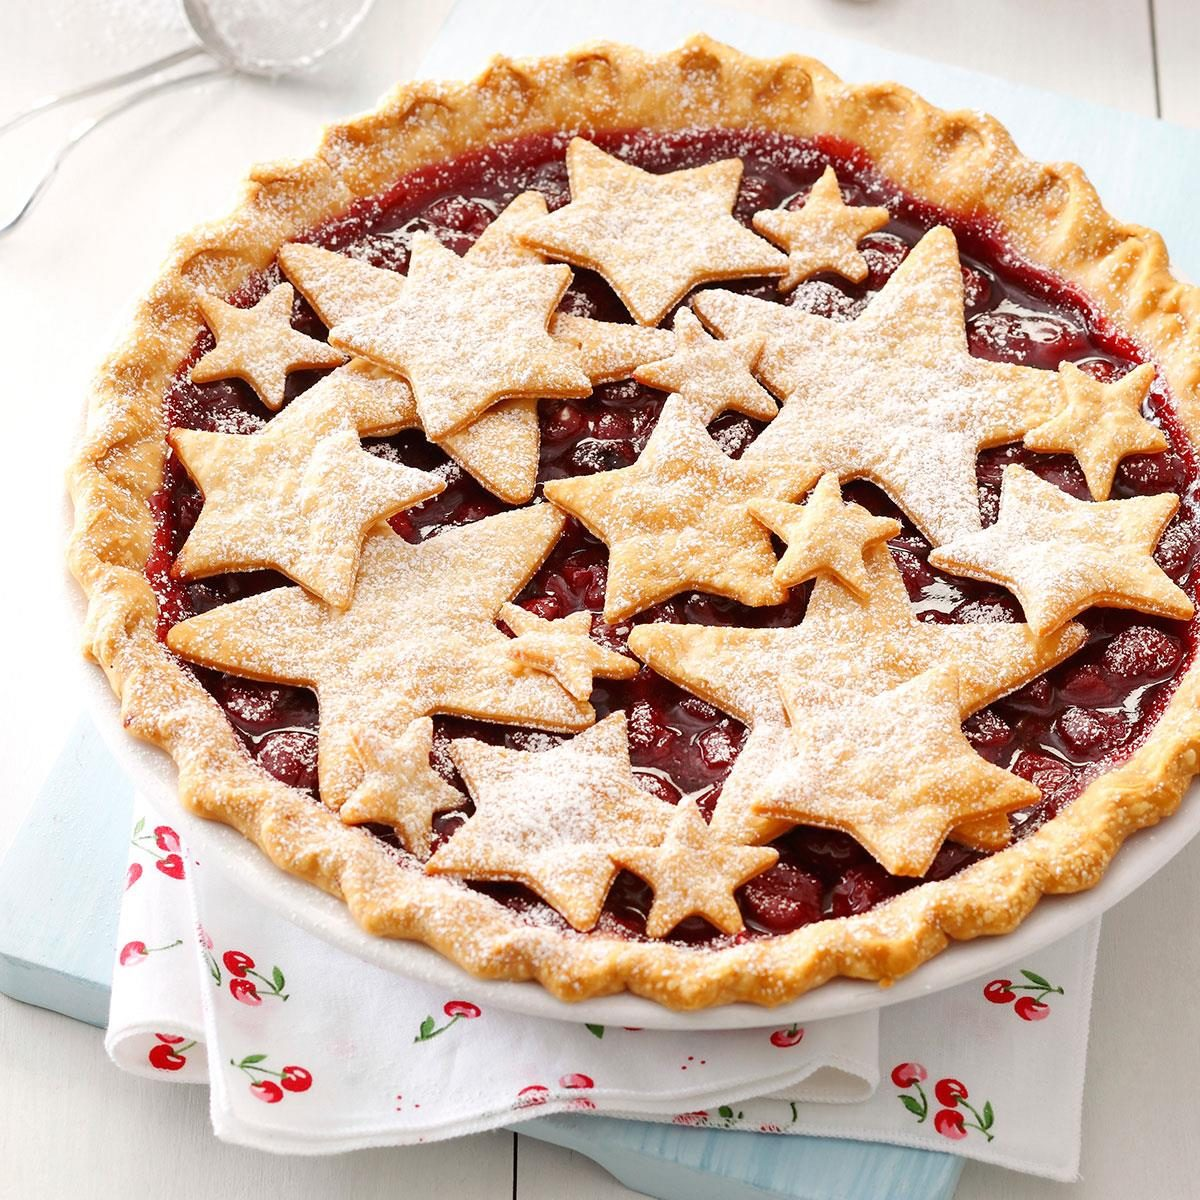 Cherries: County Fair Cherry Pie